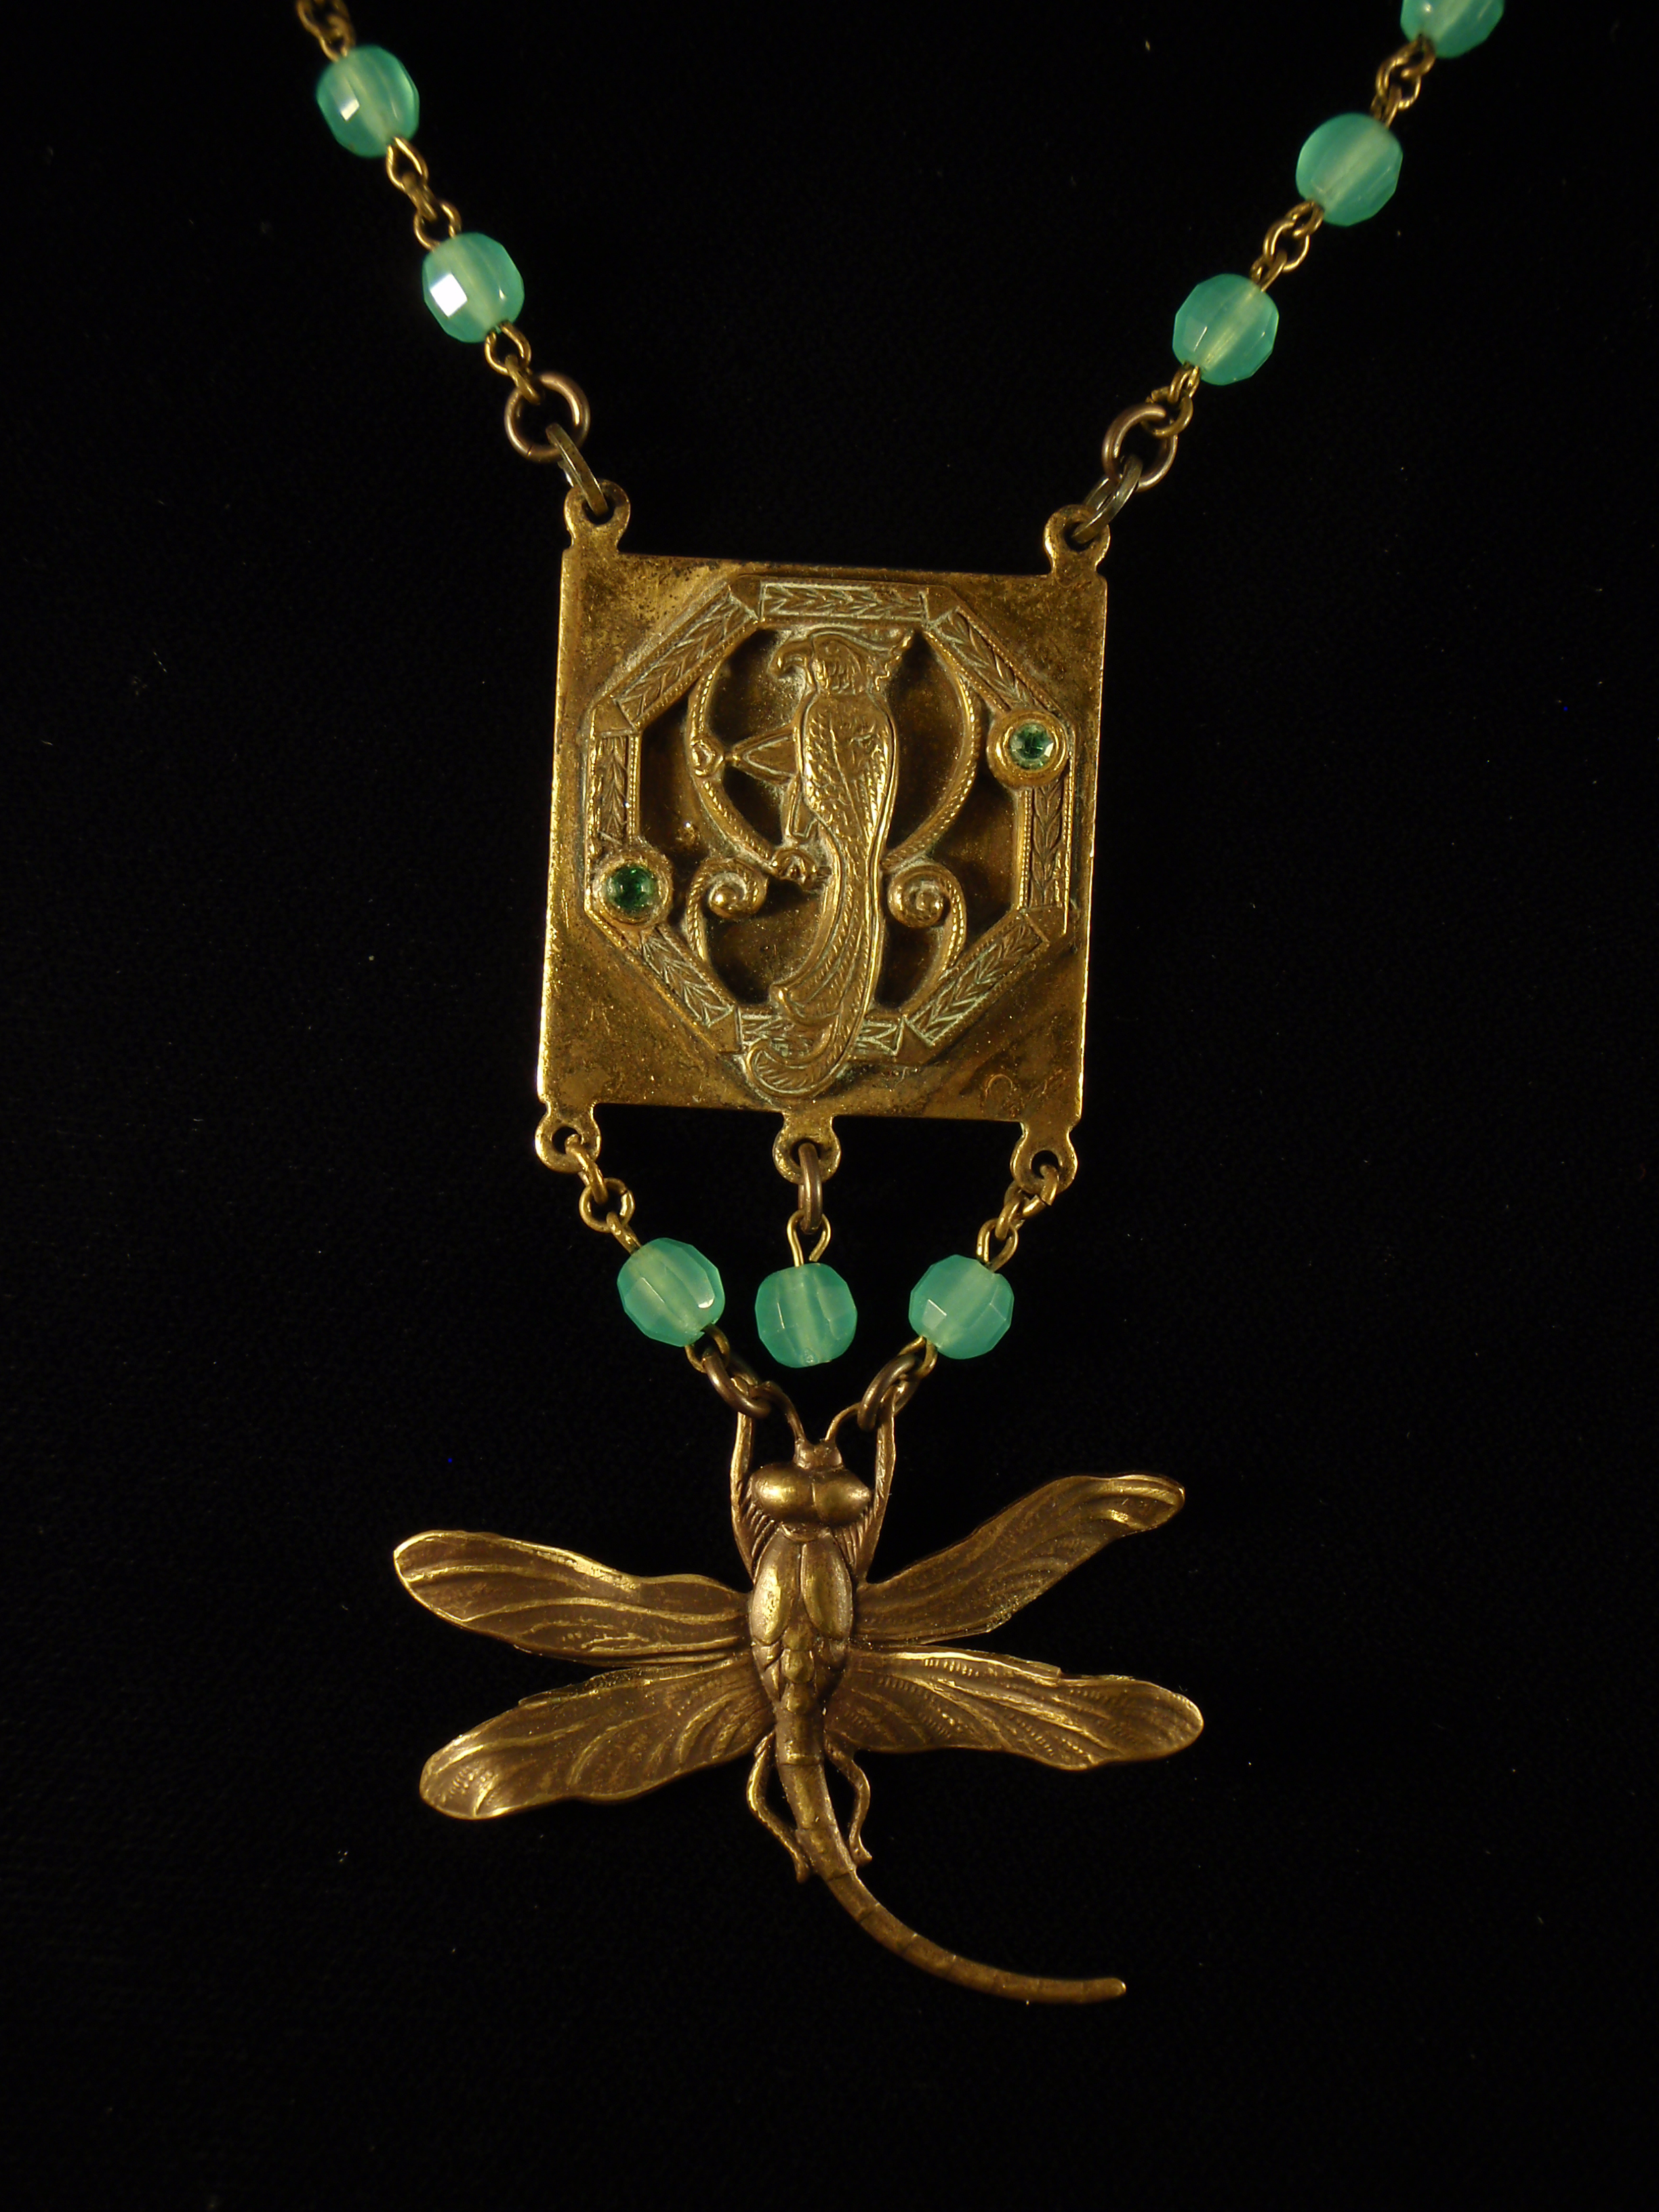 Art Deco Era Dragonfly Necklace Jennifer Campbell